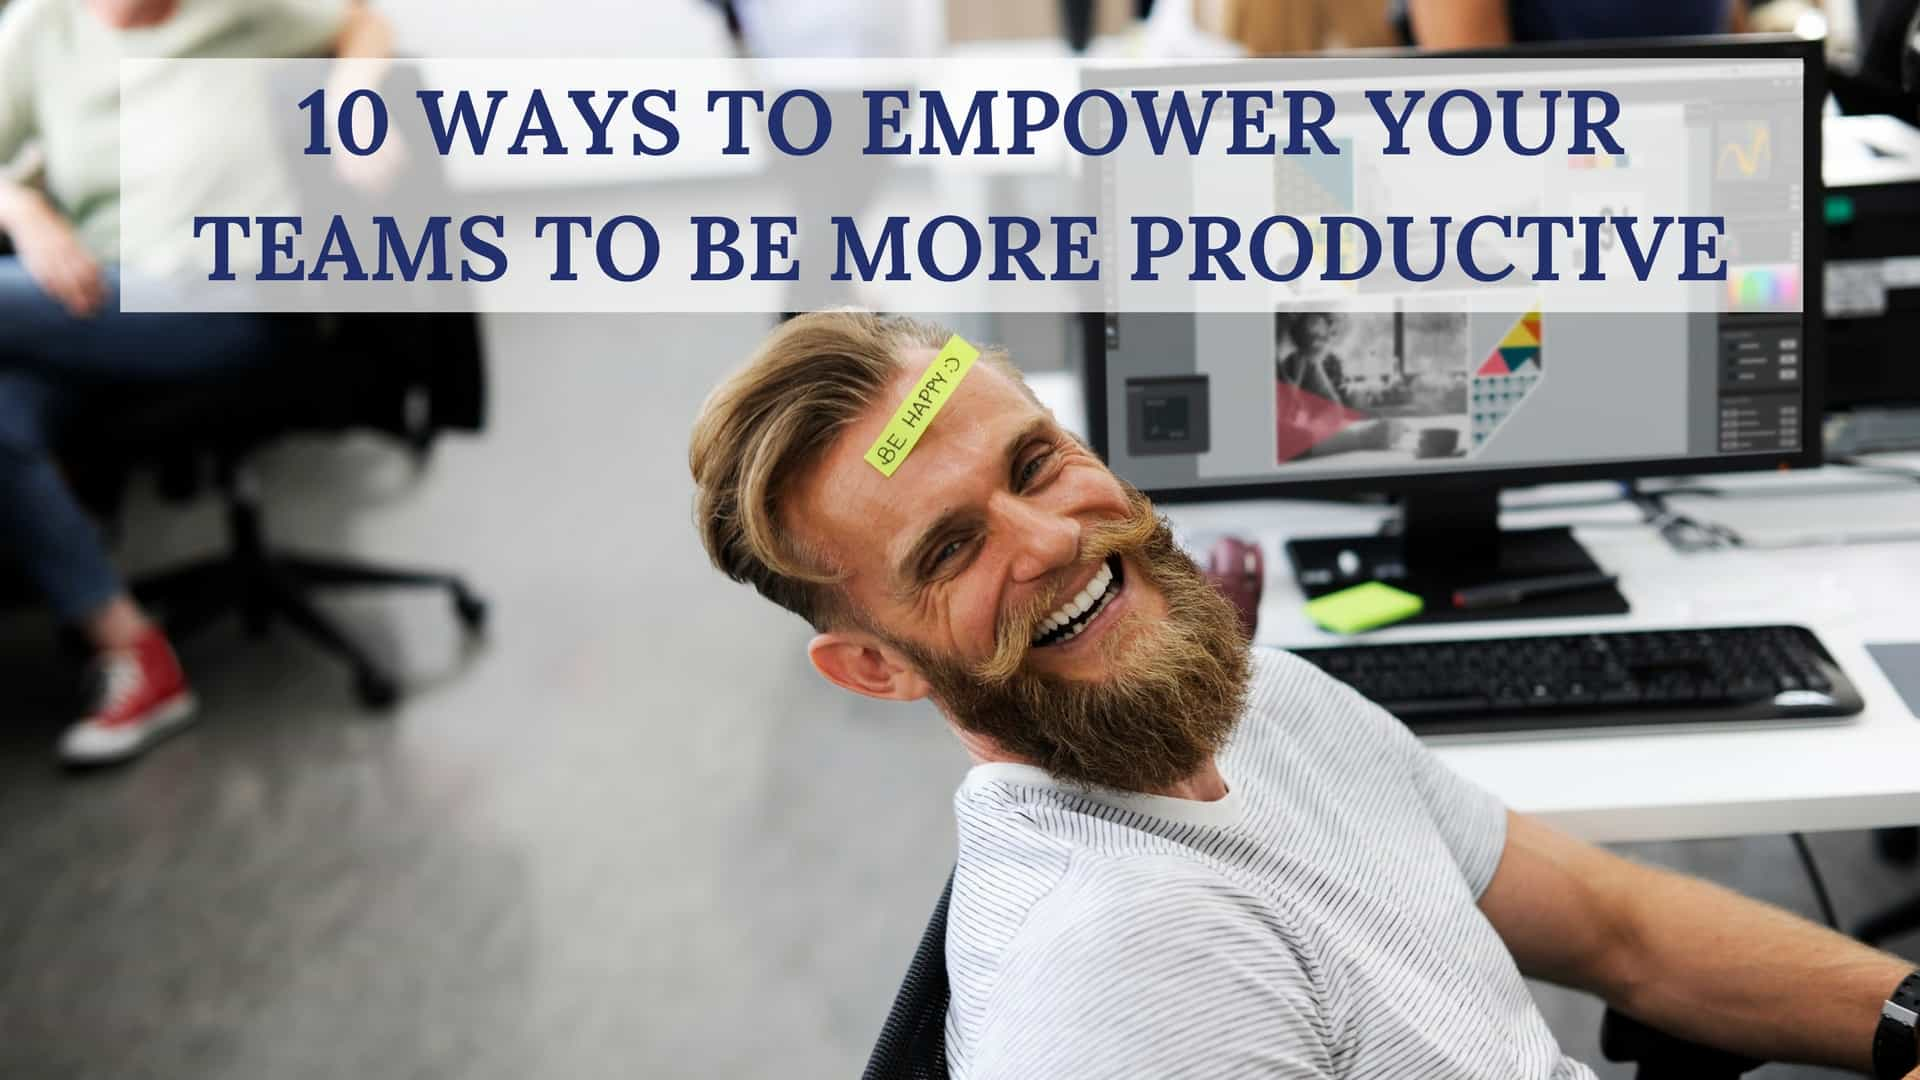 10 ways to empower your teams to be more productive